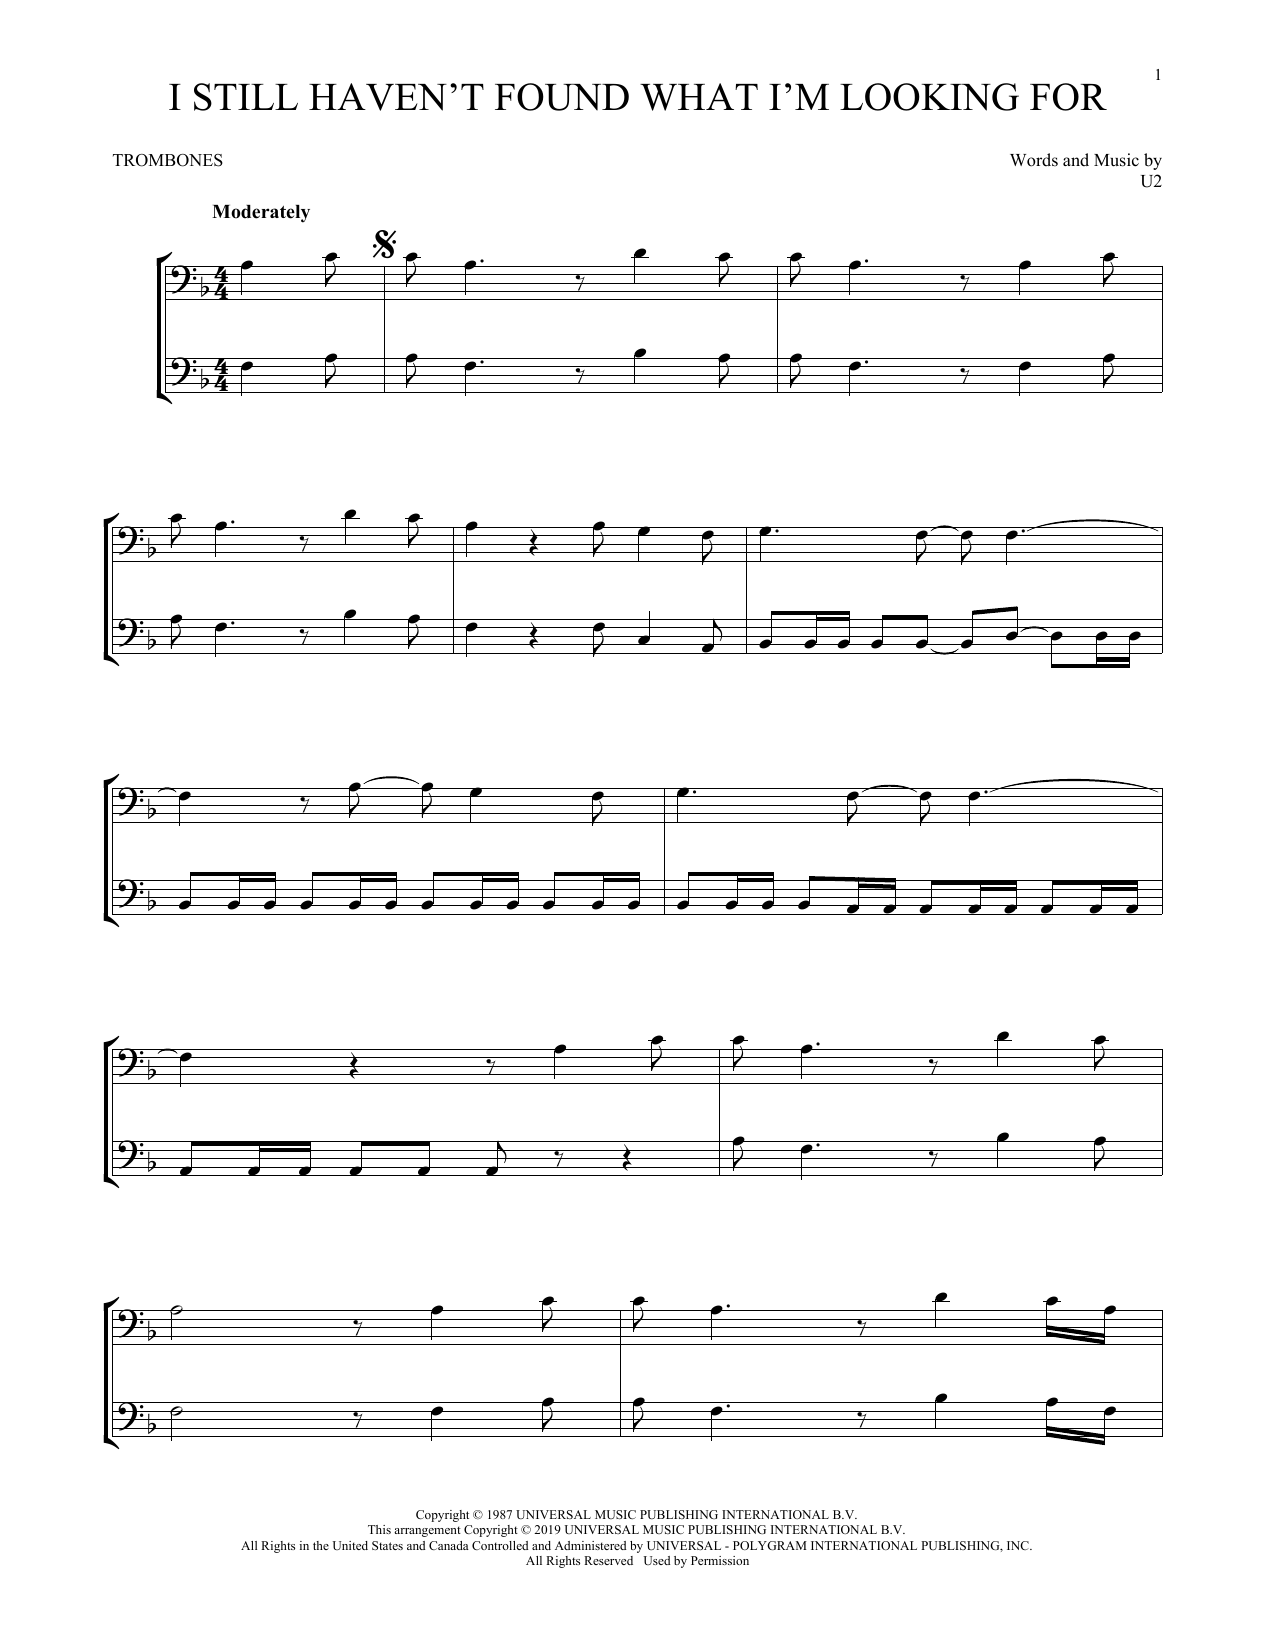 I Still Haven't Found What I'm Looking For (Trombone Duet)